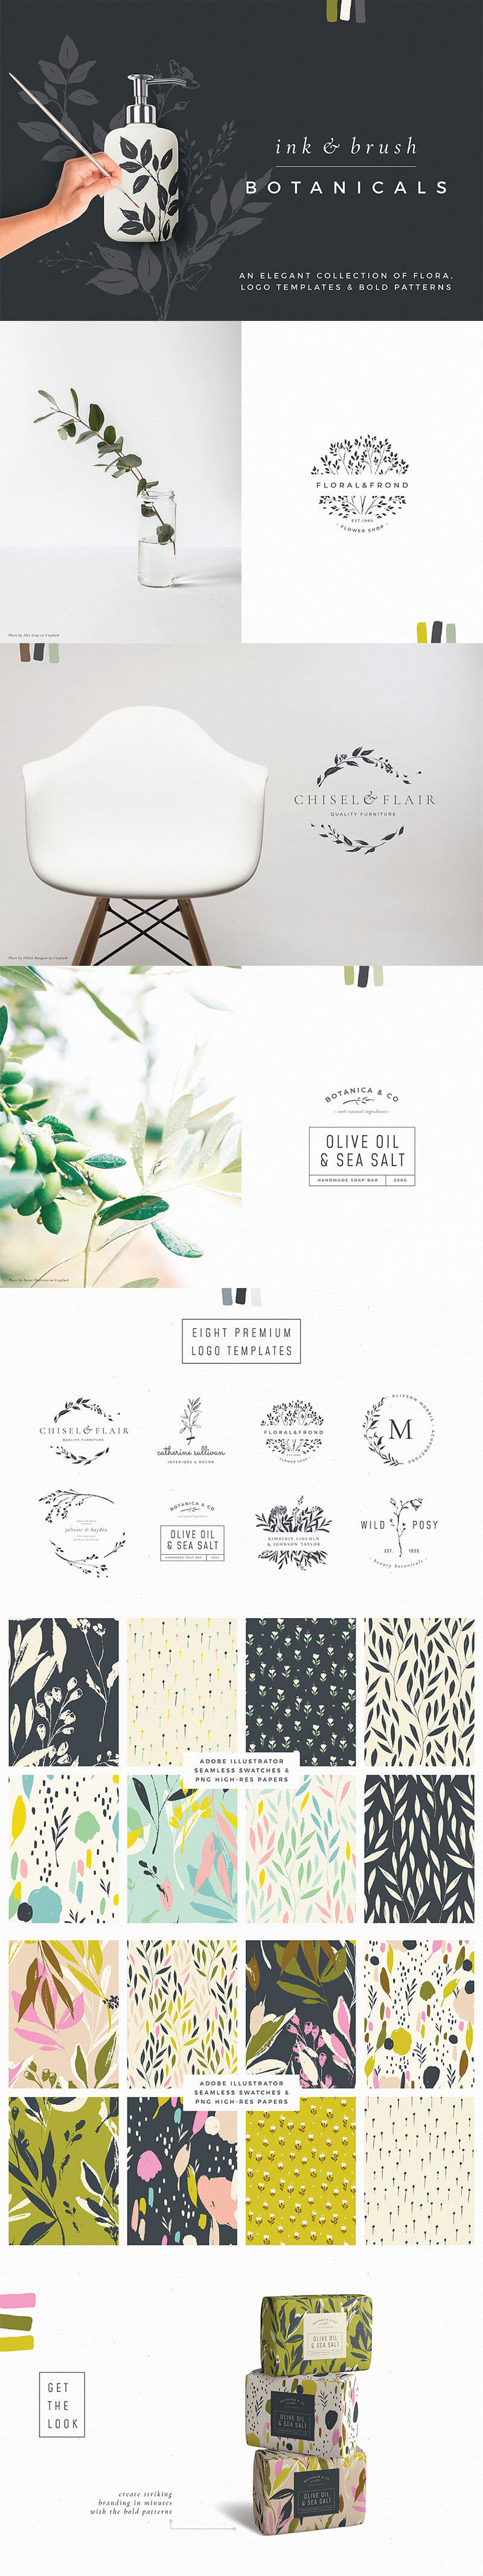 all-purpose-creatives-kit-001-a-1